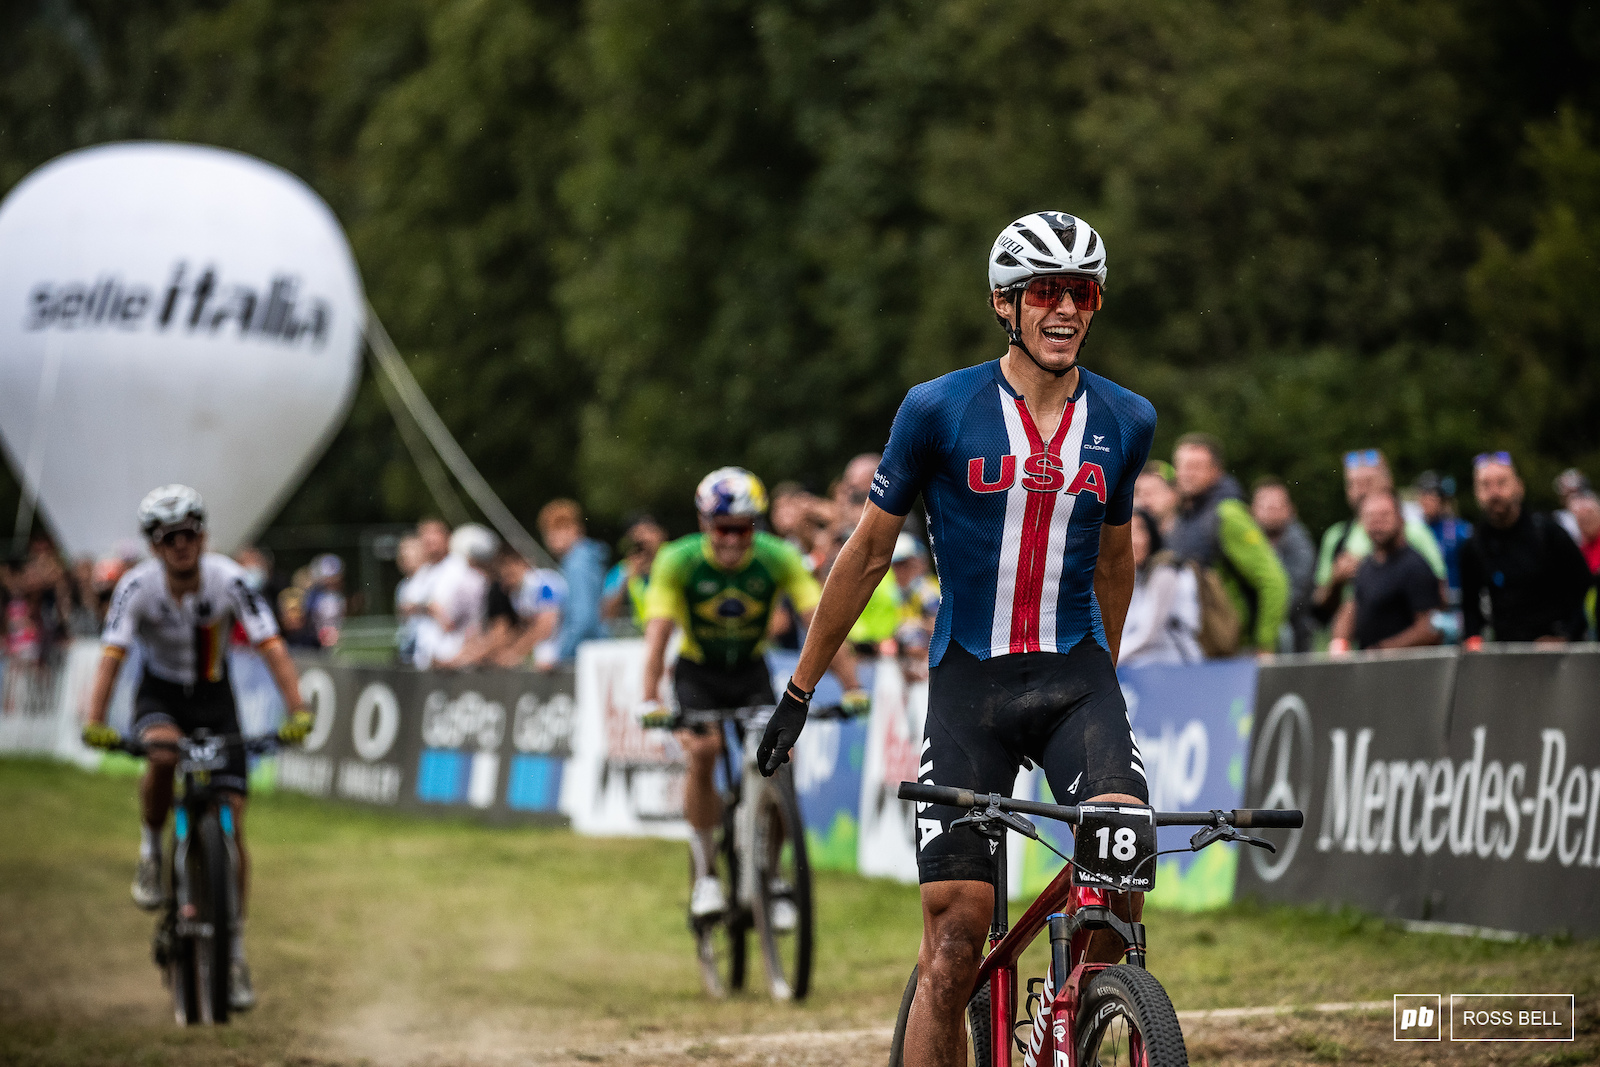 Christopher Blevins rode the last lap to perfection and was rewarded with the very first World Championships in XC Short Track.